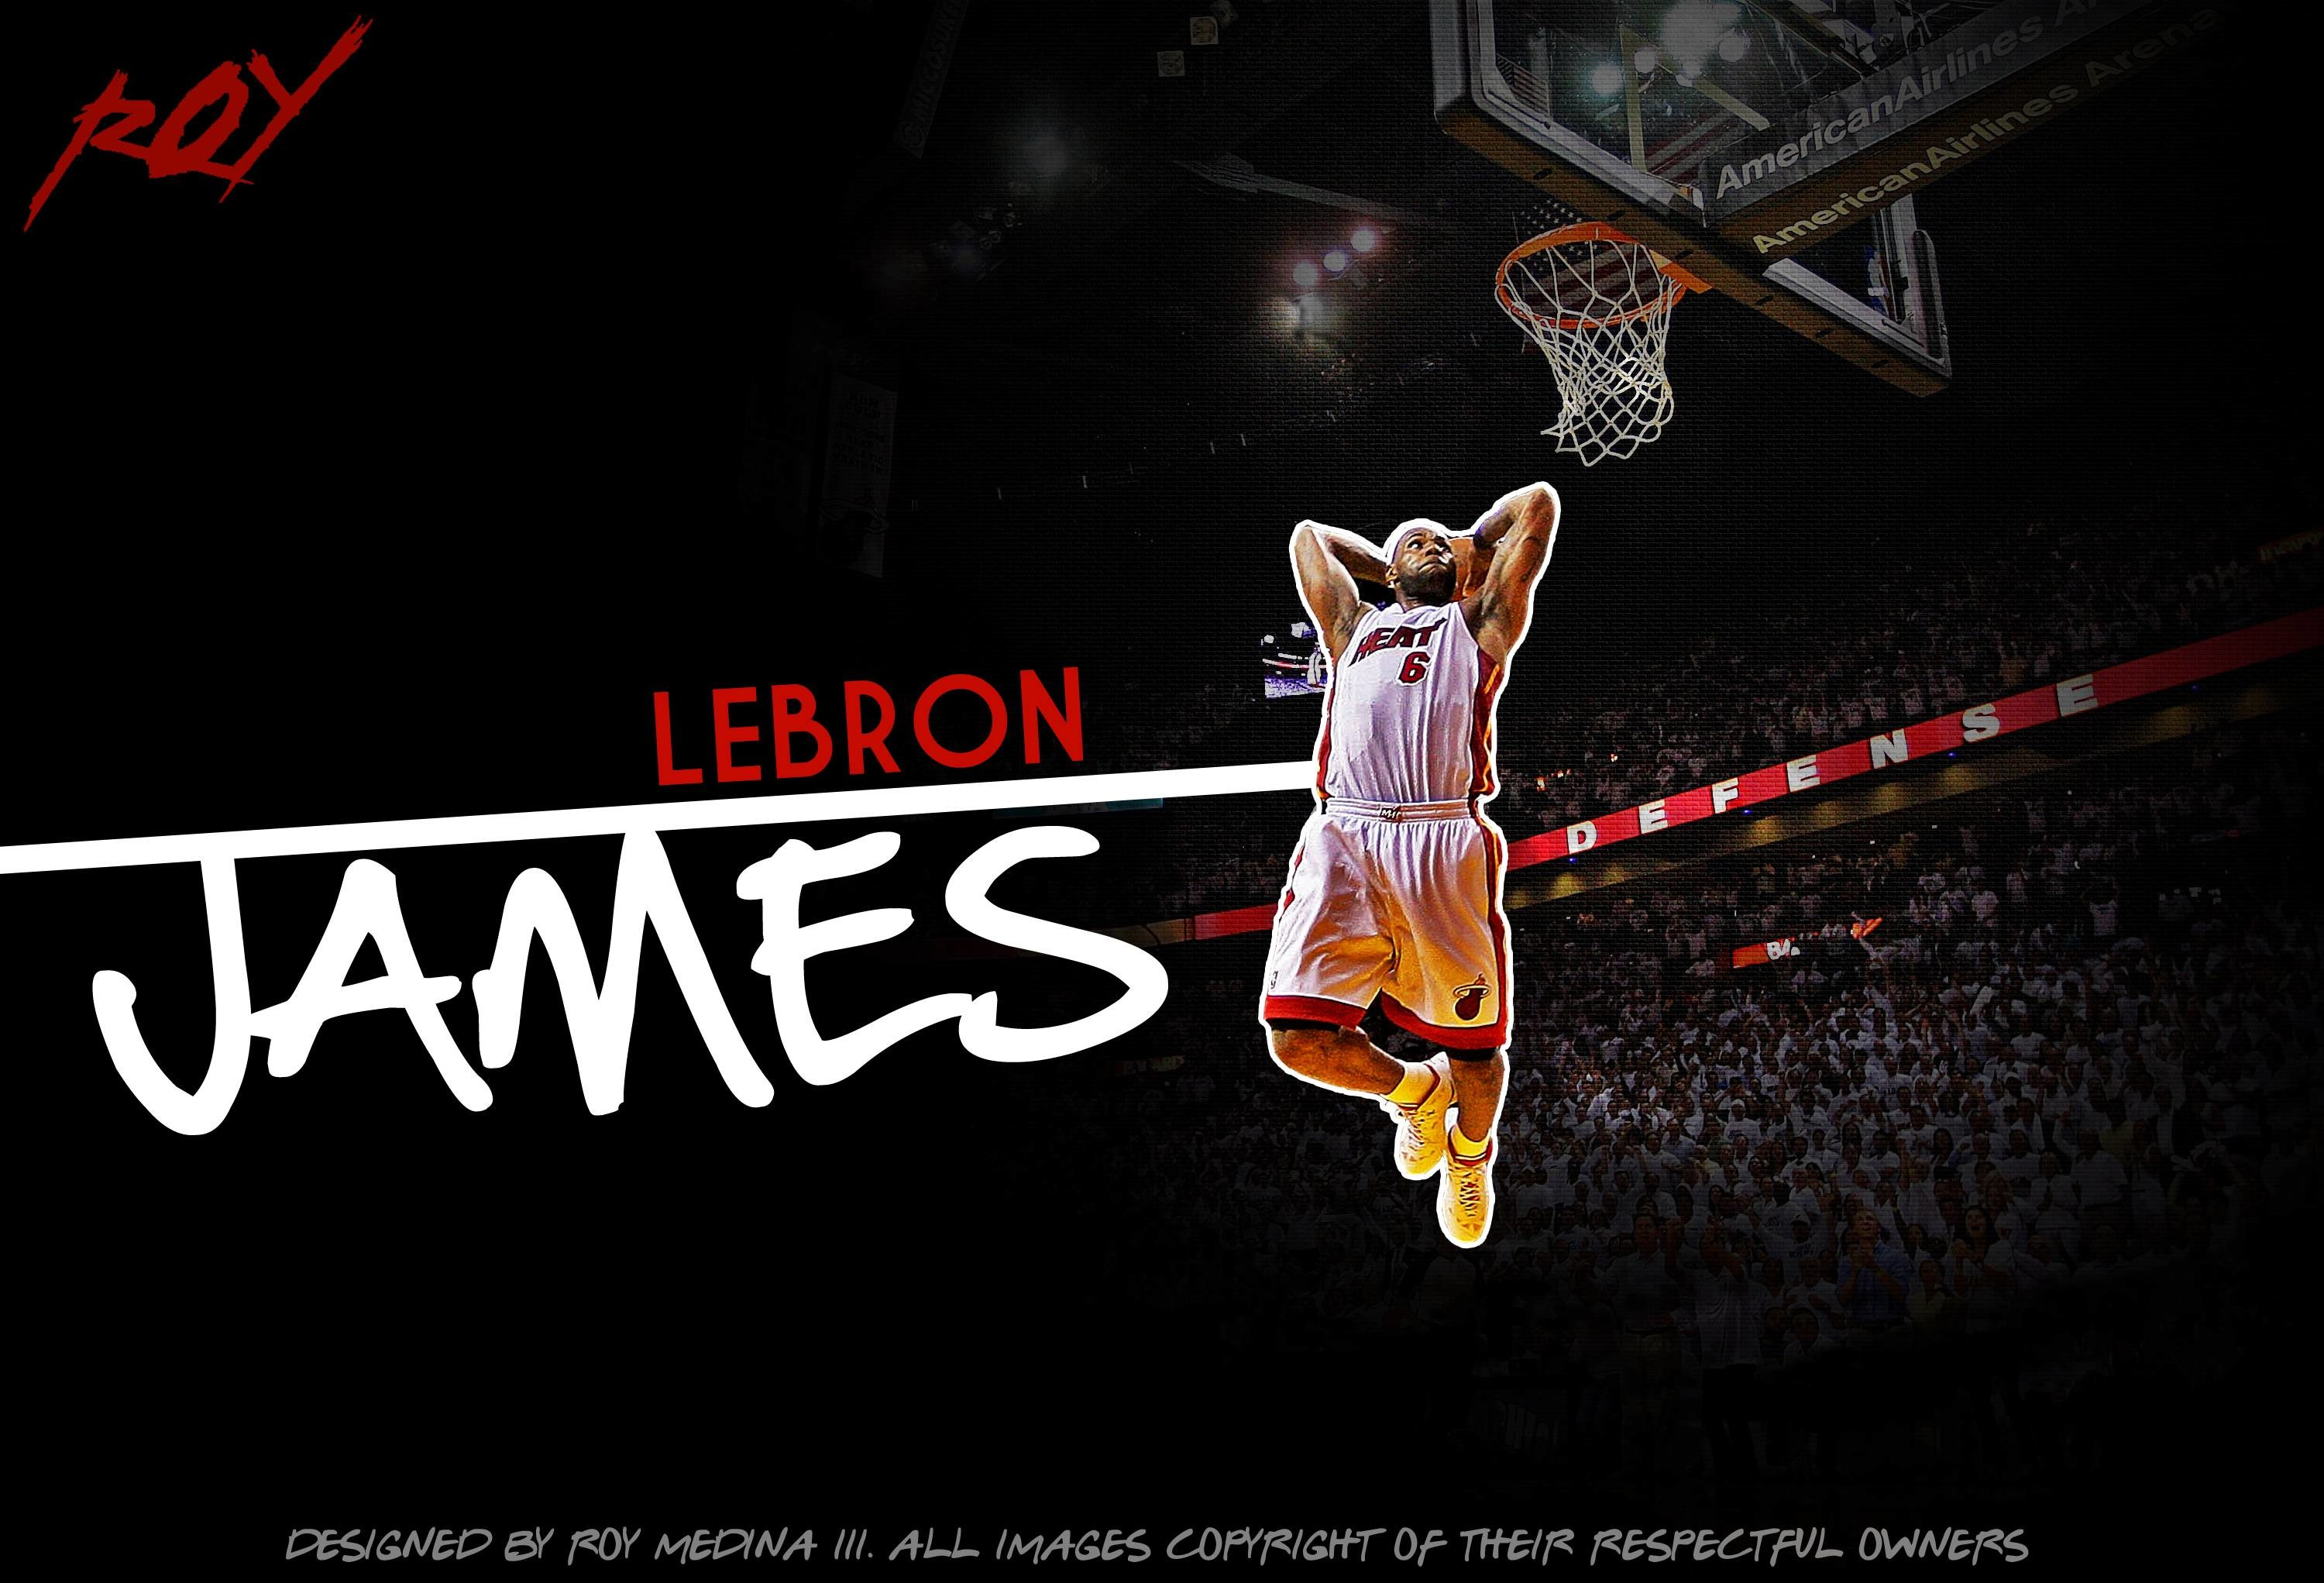 3000x2043 Wallpapers For > Lebron James Wallpaper Heat Dunk